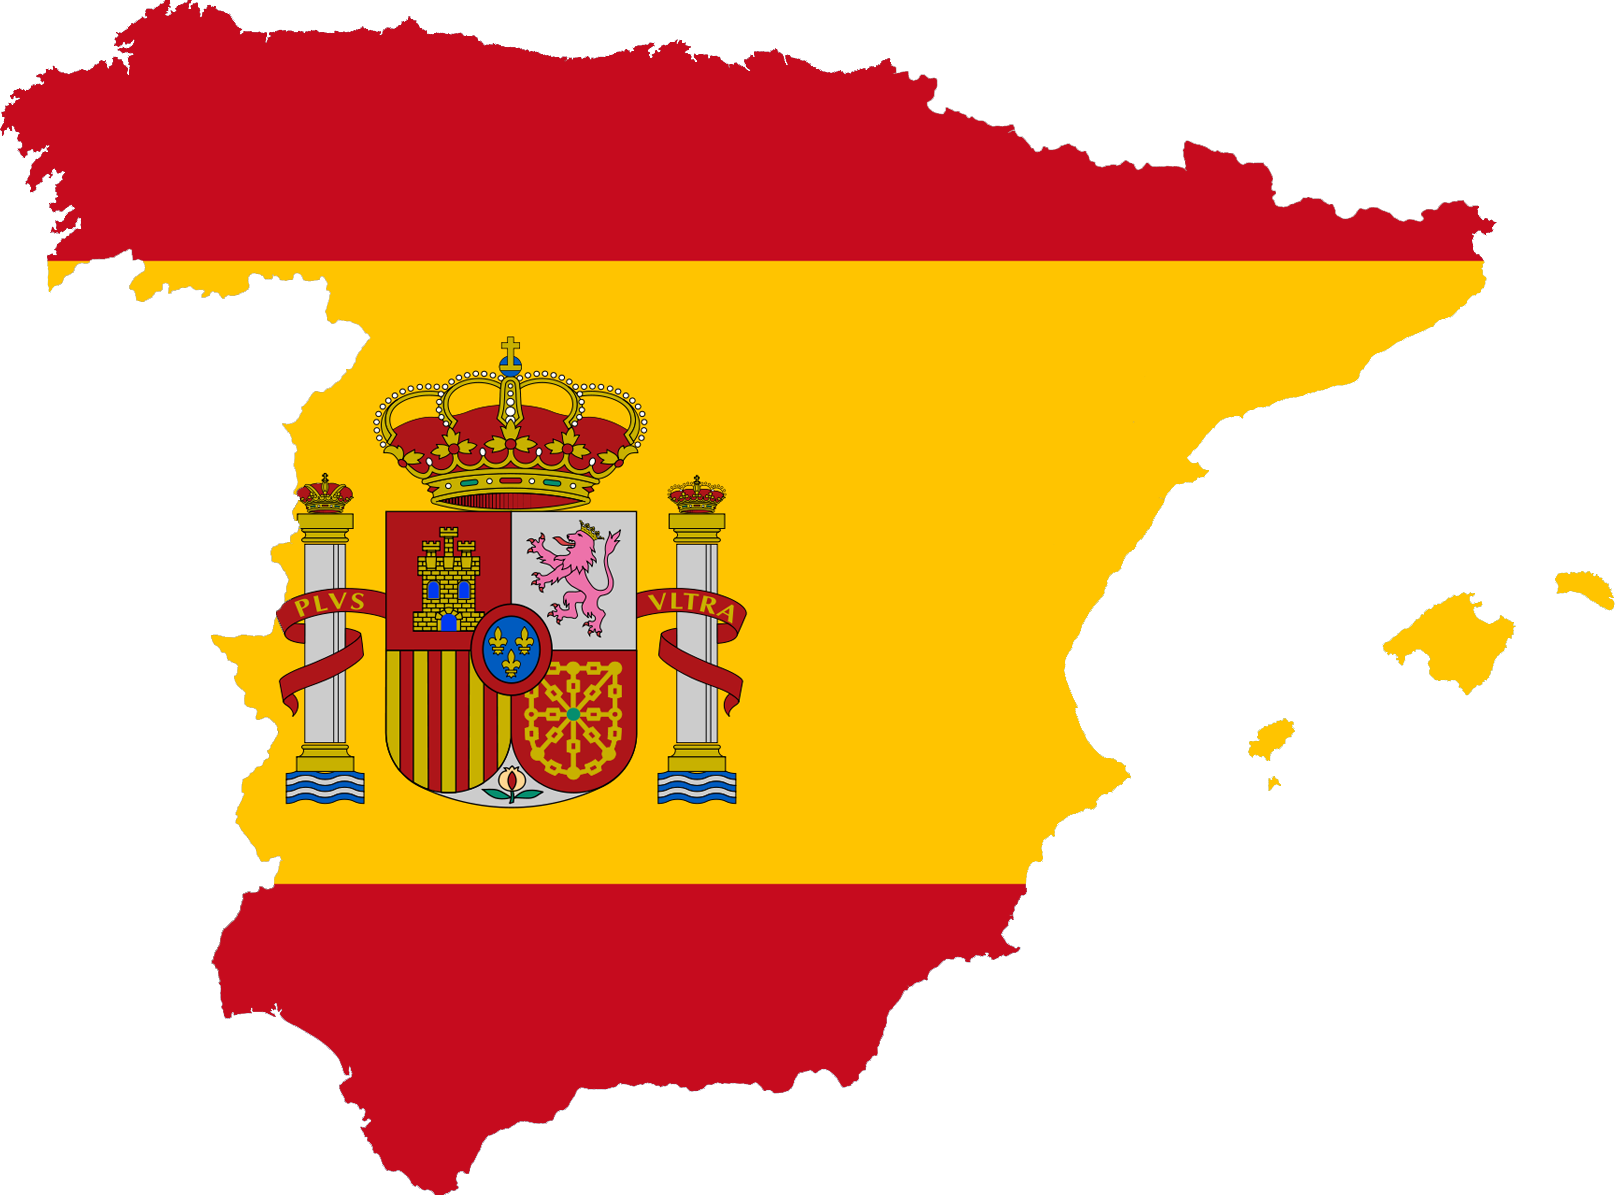 Spanish flag in the shape of the country